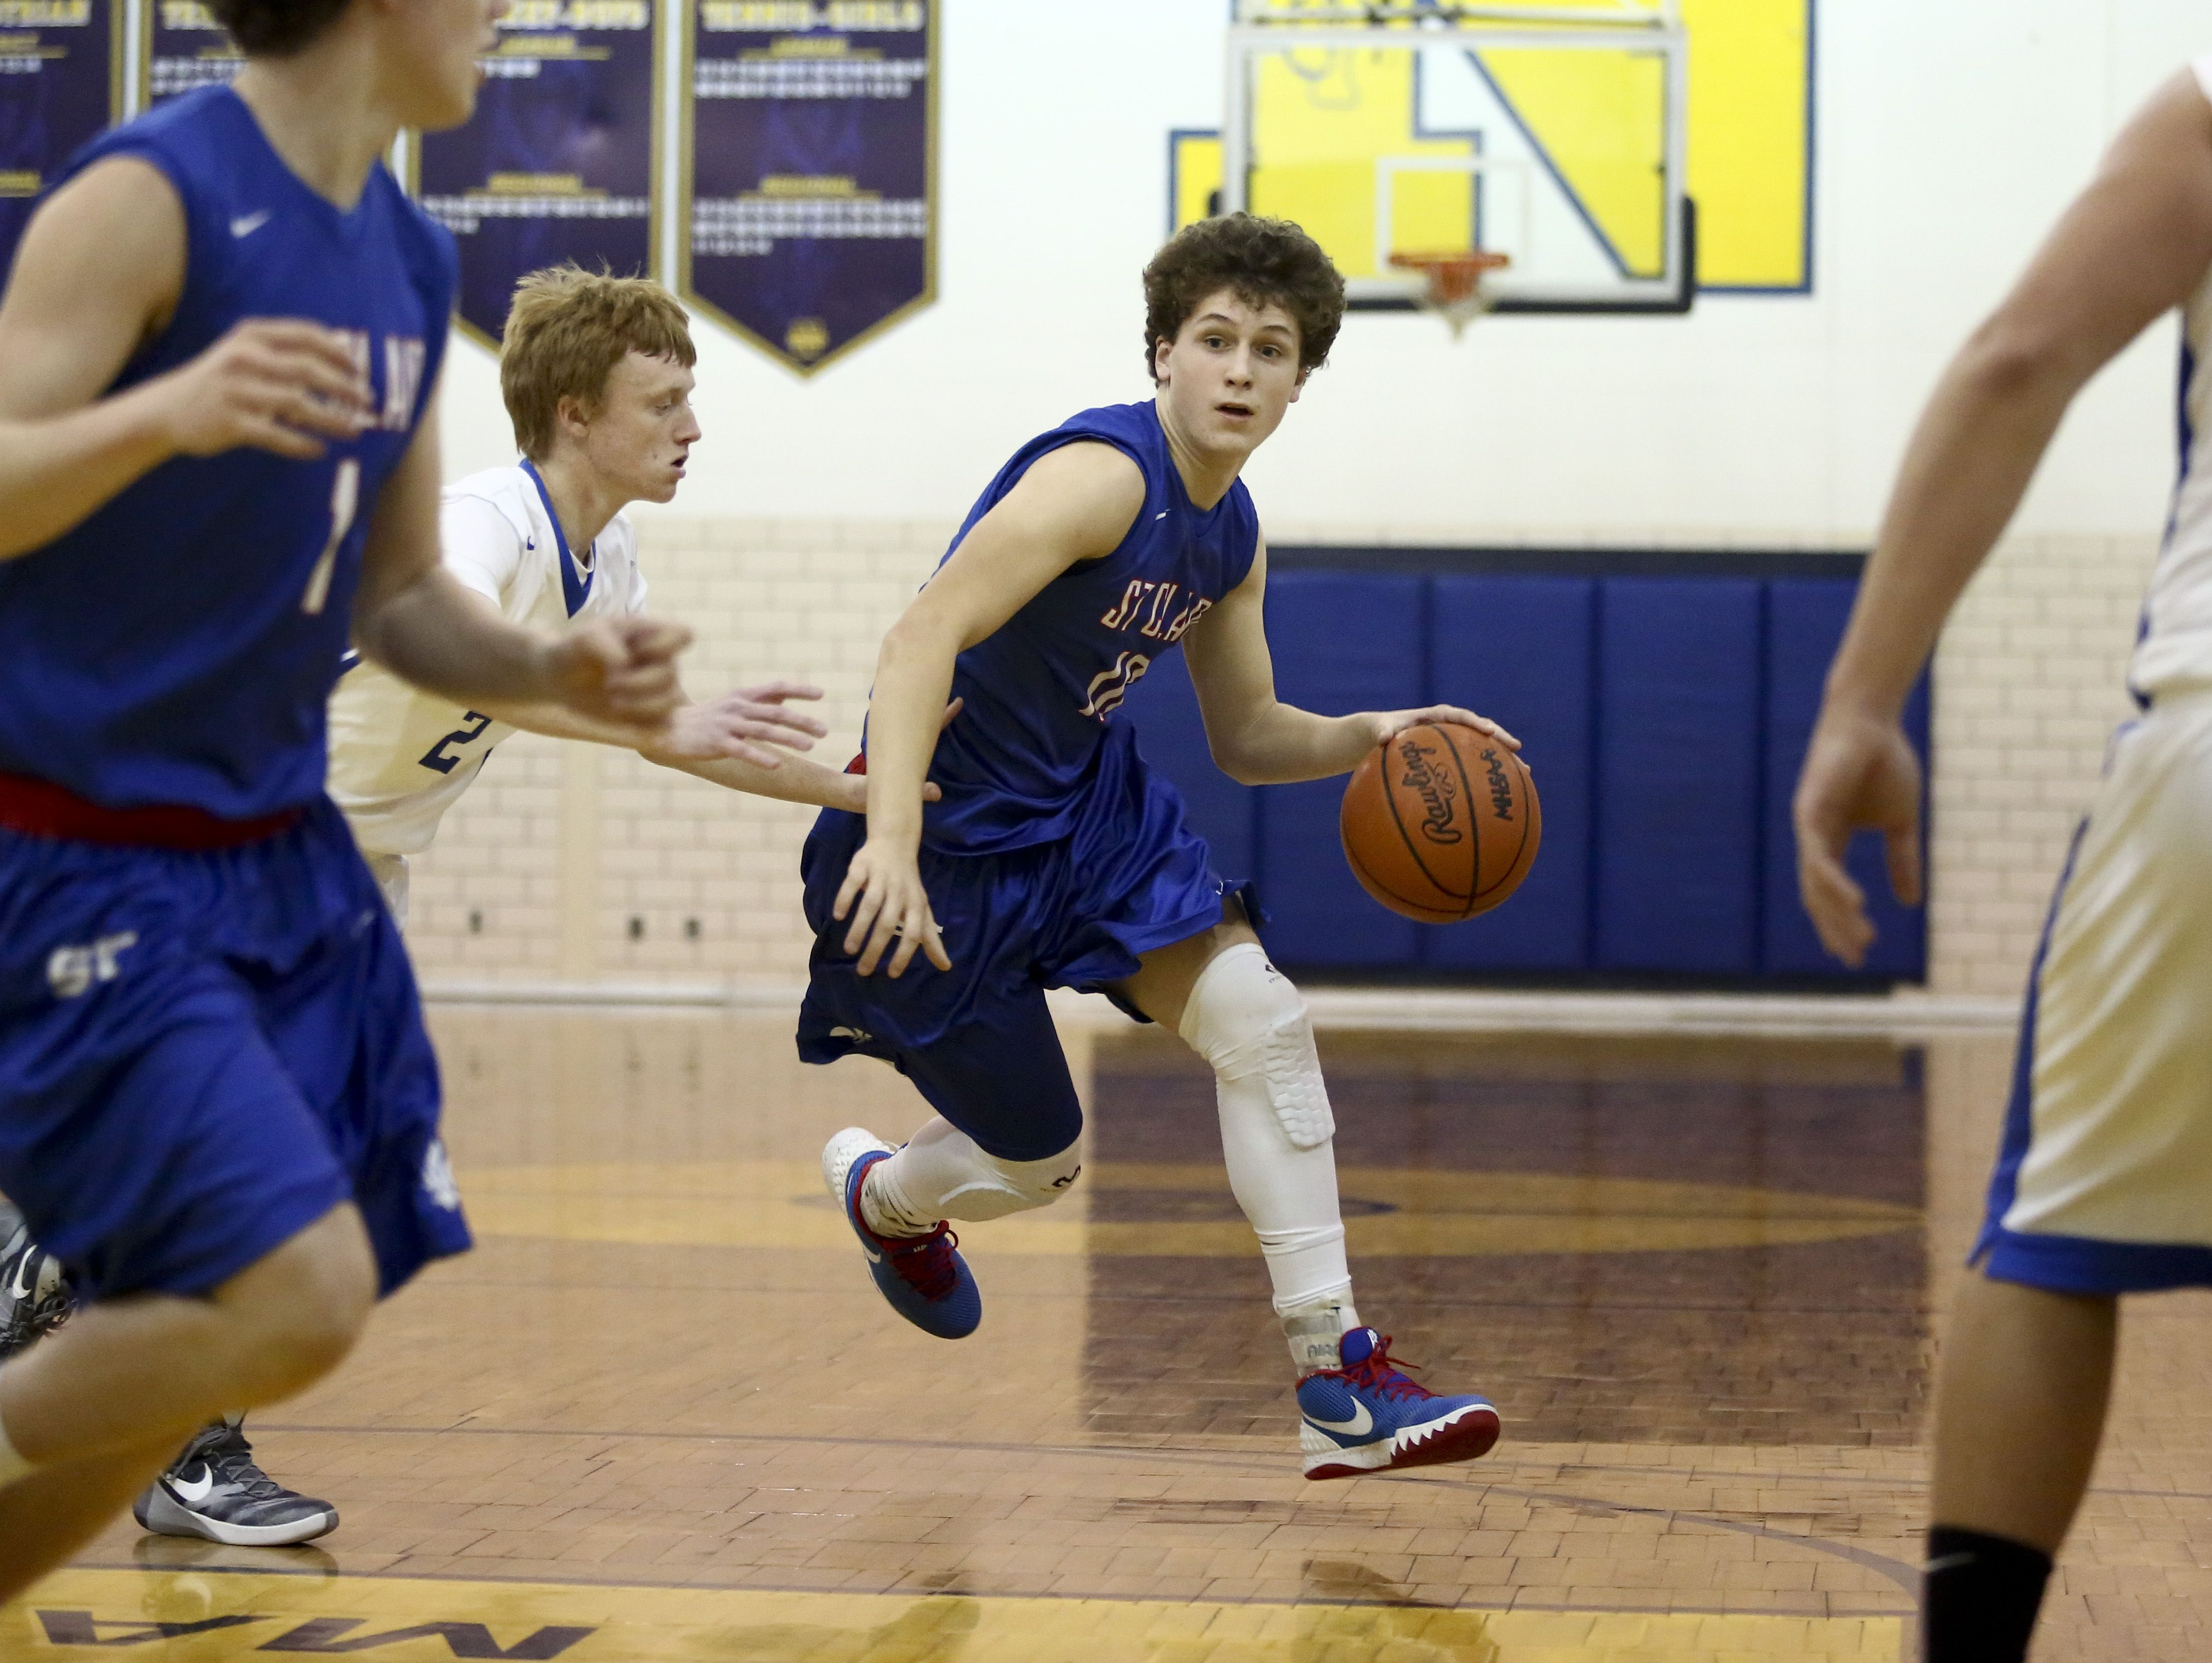 St. Clair sophomore Ben Davidson works the ball down court during the Ed Peltz Holiday Basketball Tournament Friday, Dec. 18, 2015 at Port Huron Northern High School.